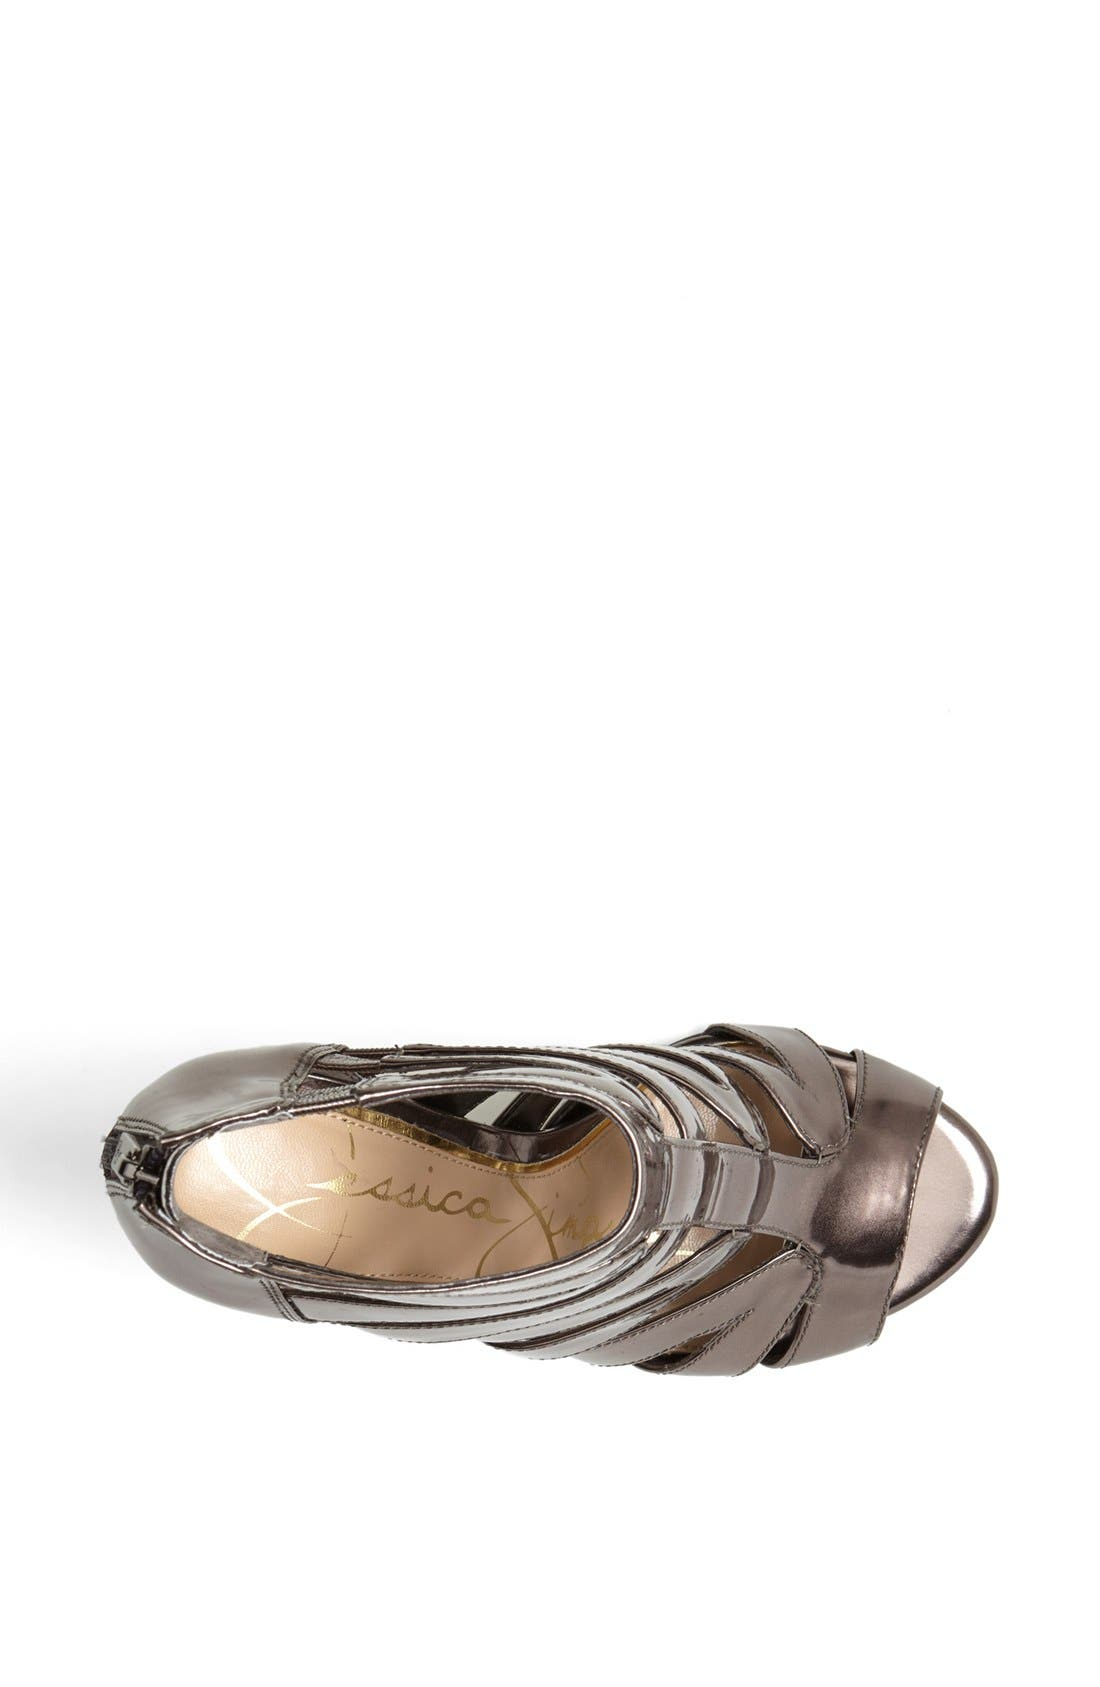 Alternate Image 3  - Jessica Simpson 'Careyy' Sandal